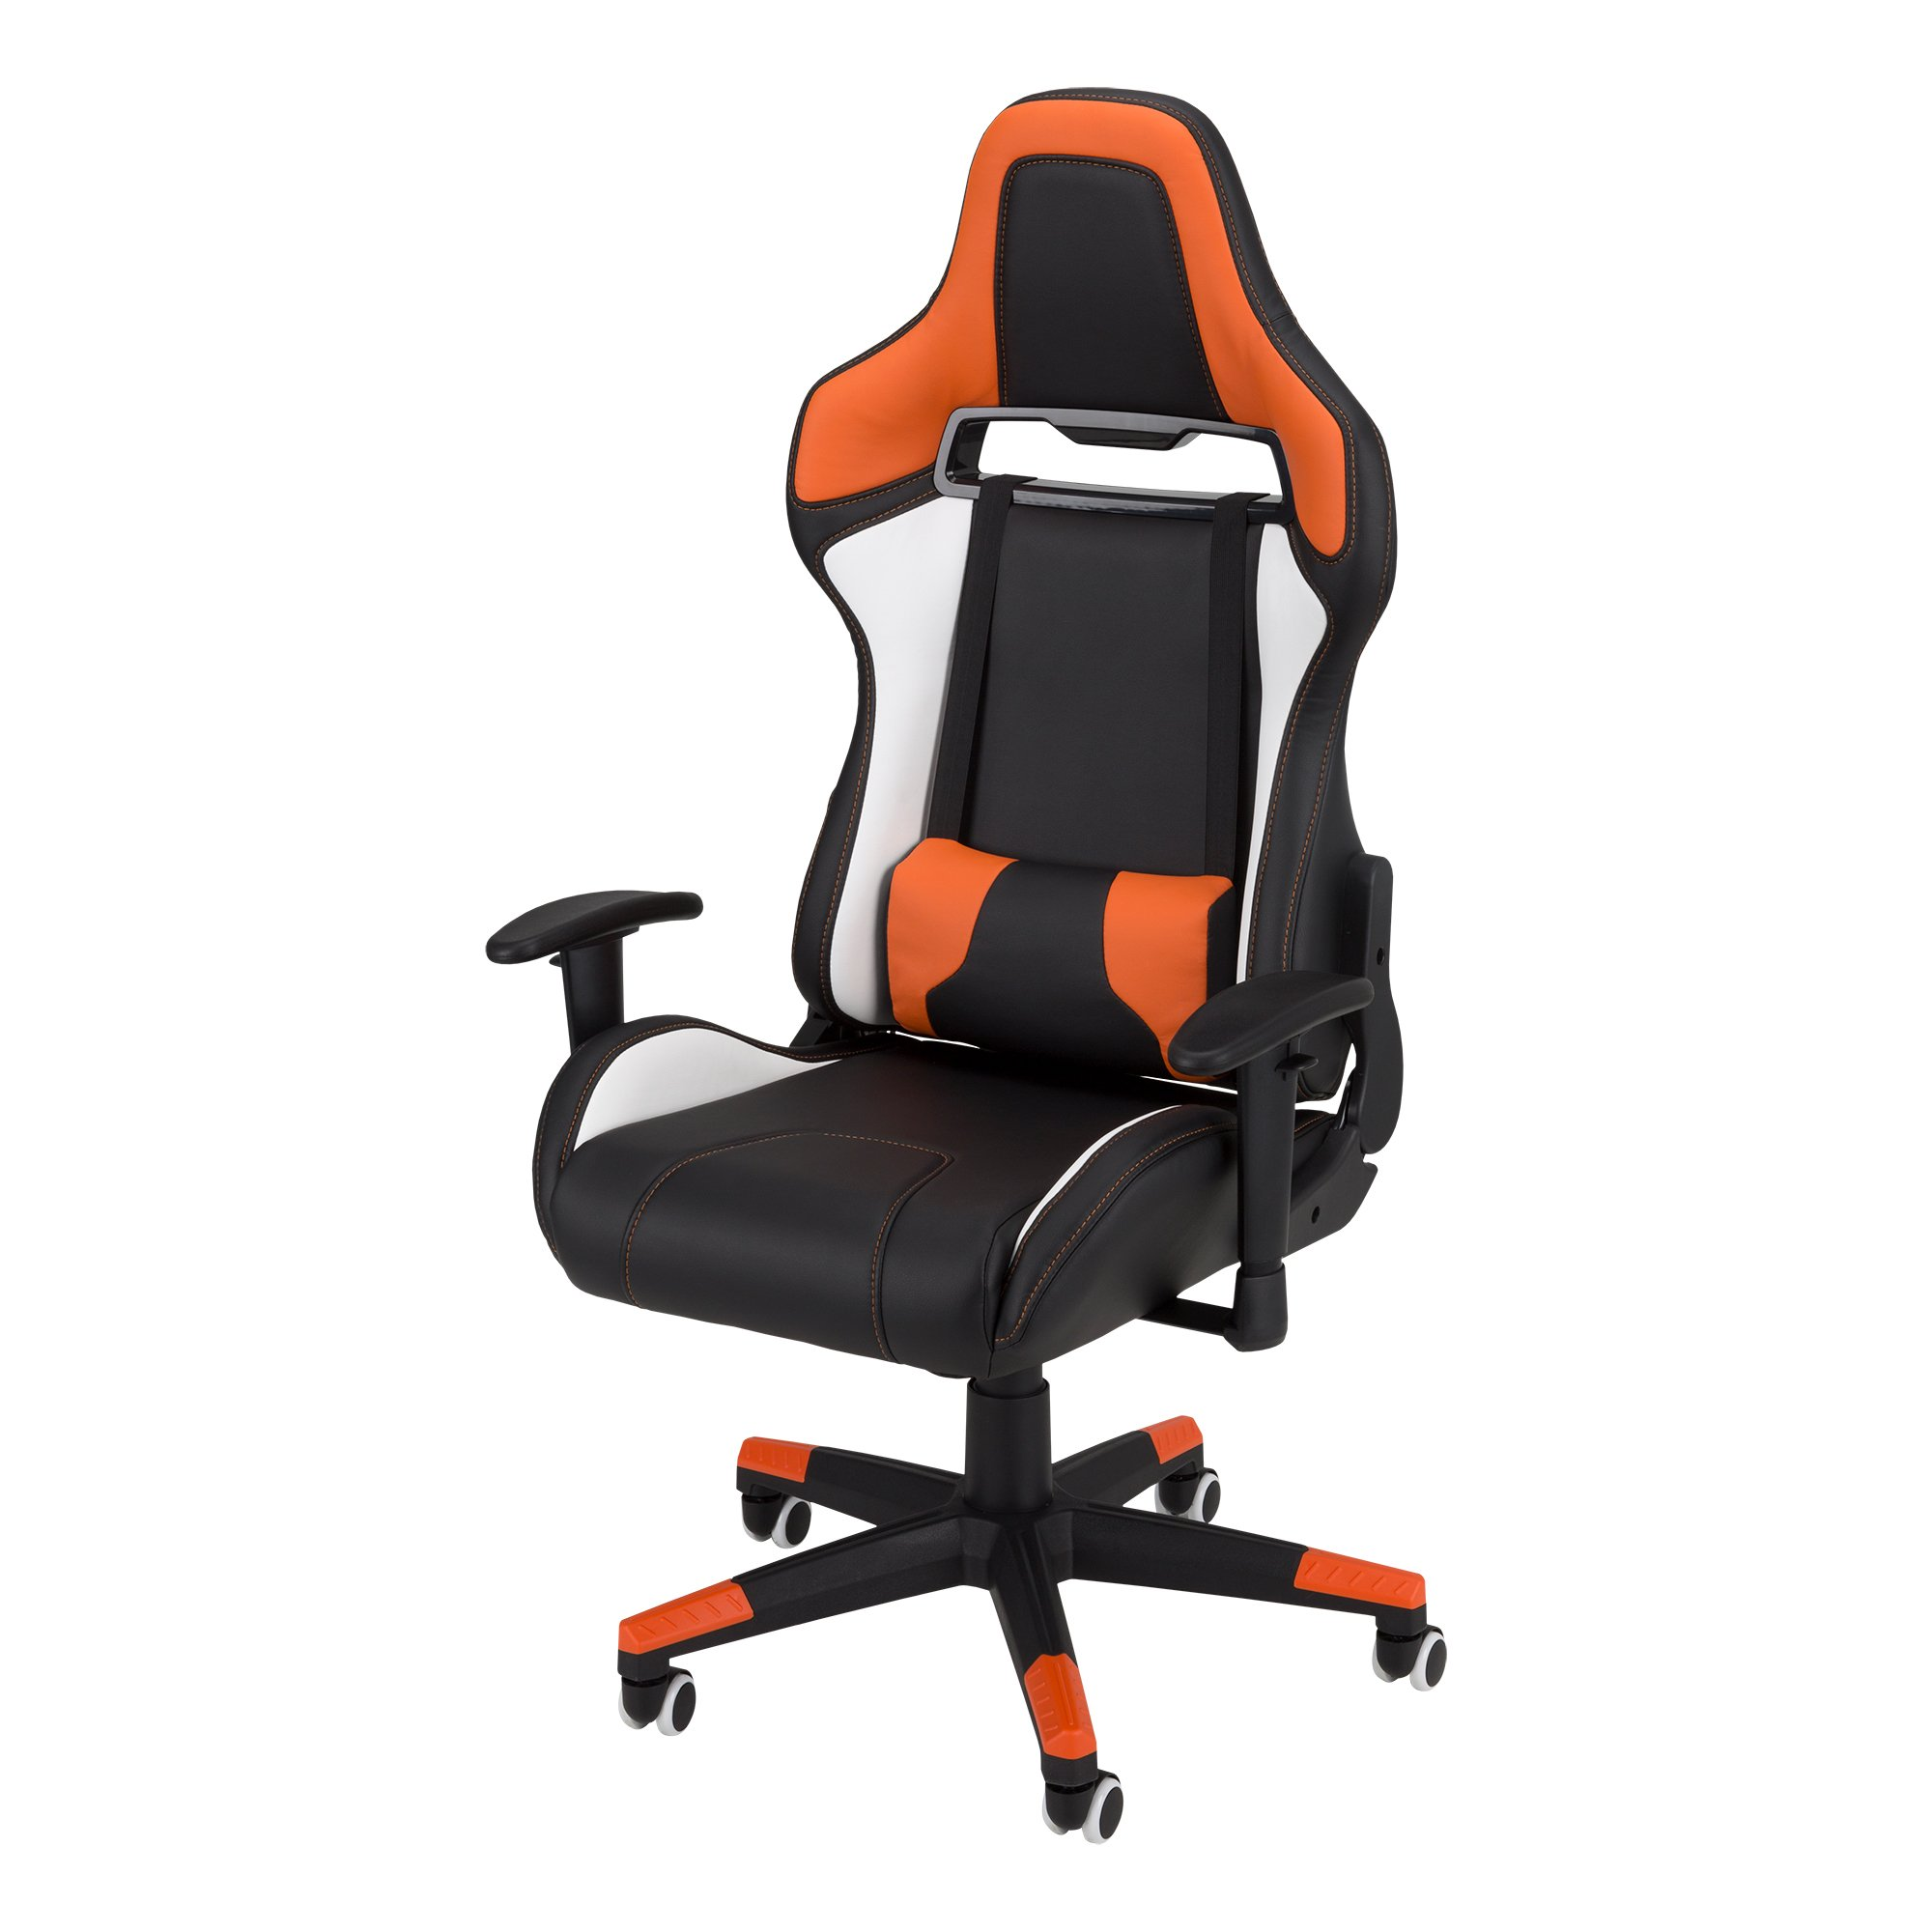 Commander - Racing-Style Gaming Chair by SkyLab Performance Seating F.C, Orange/White/Black by SkyLab Performance Seating